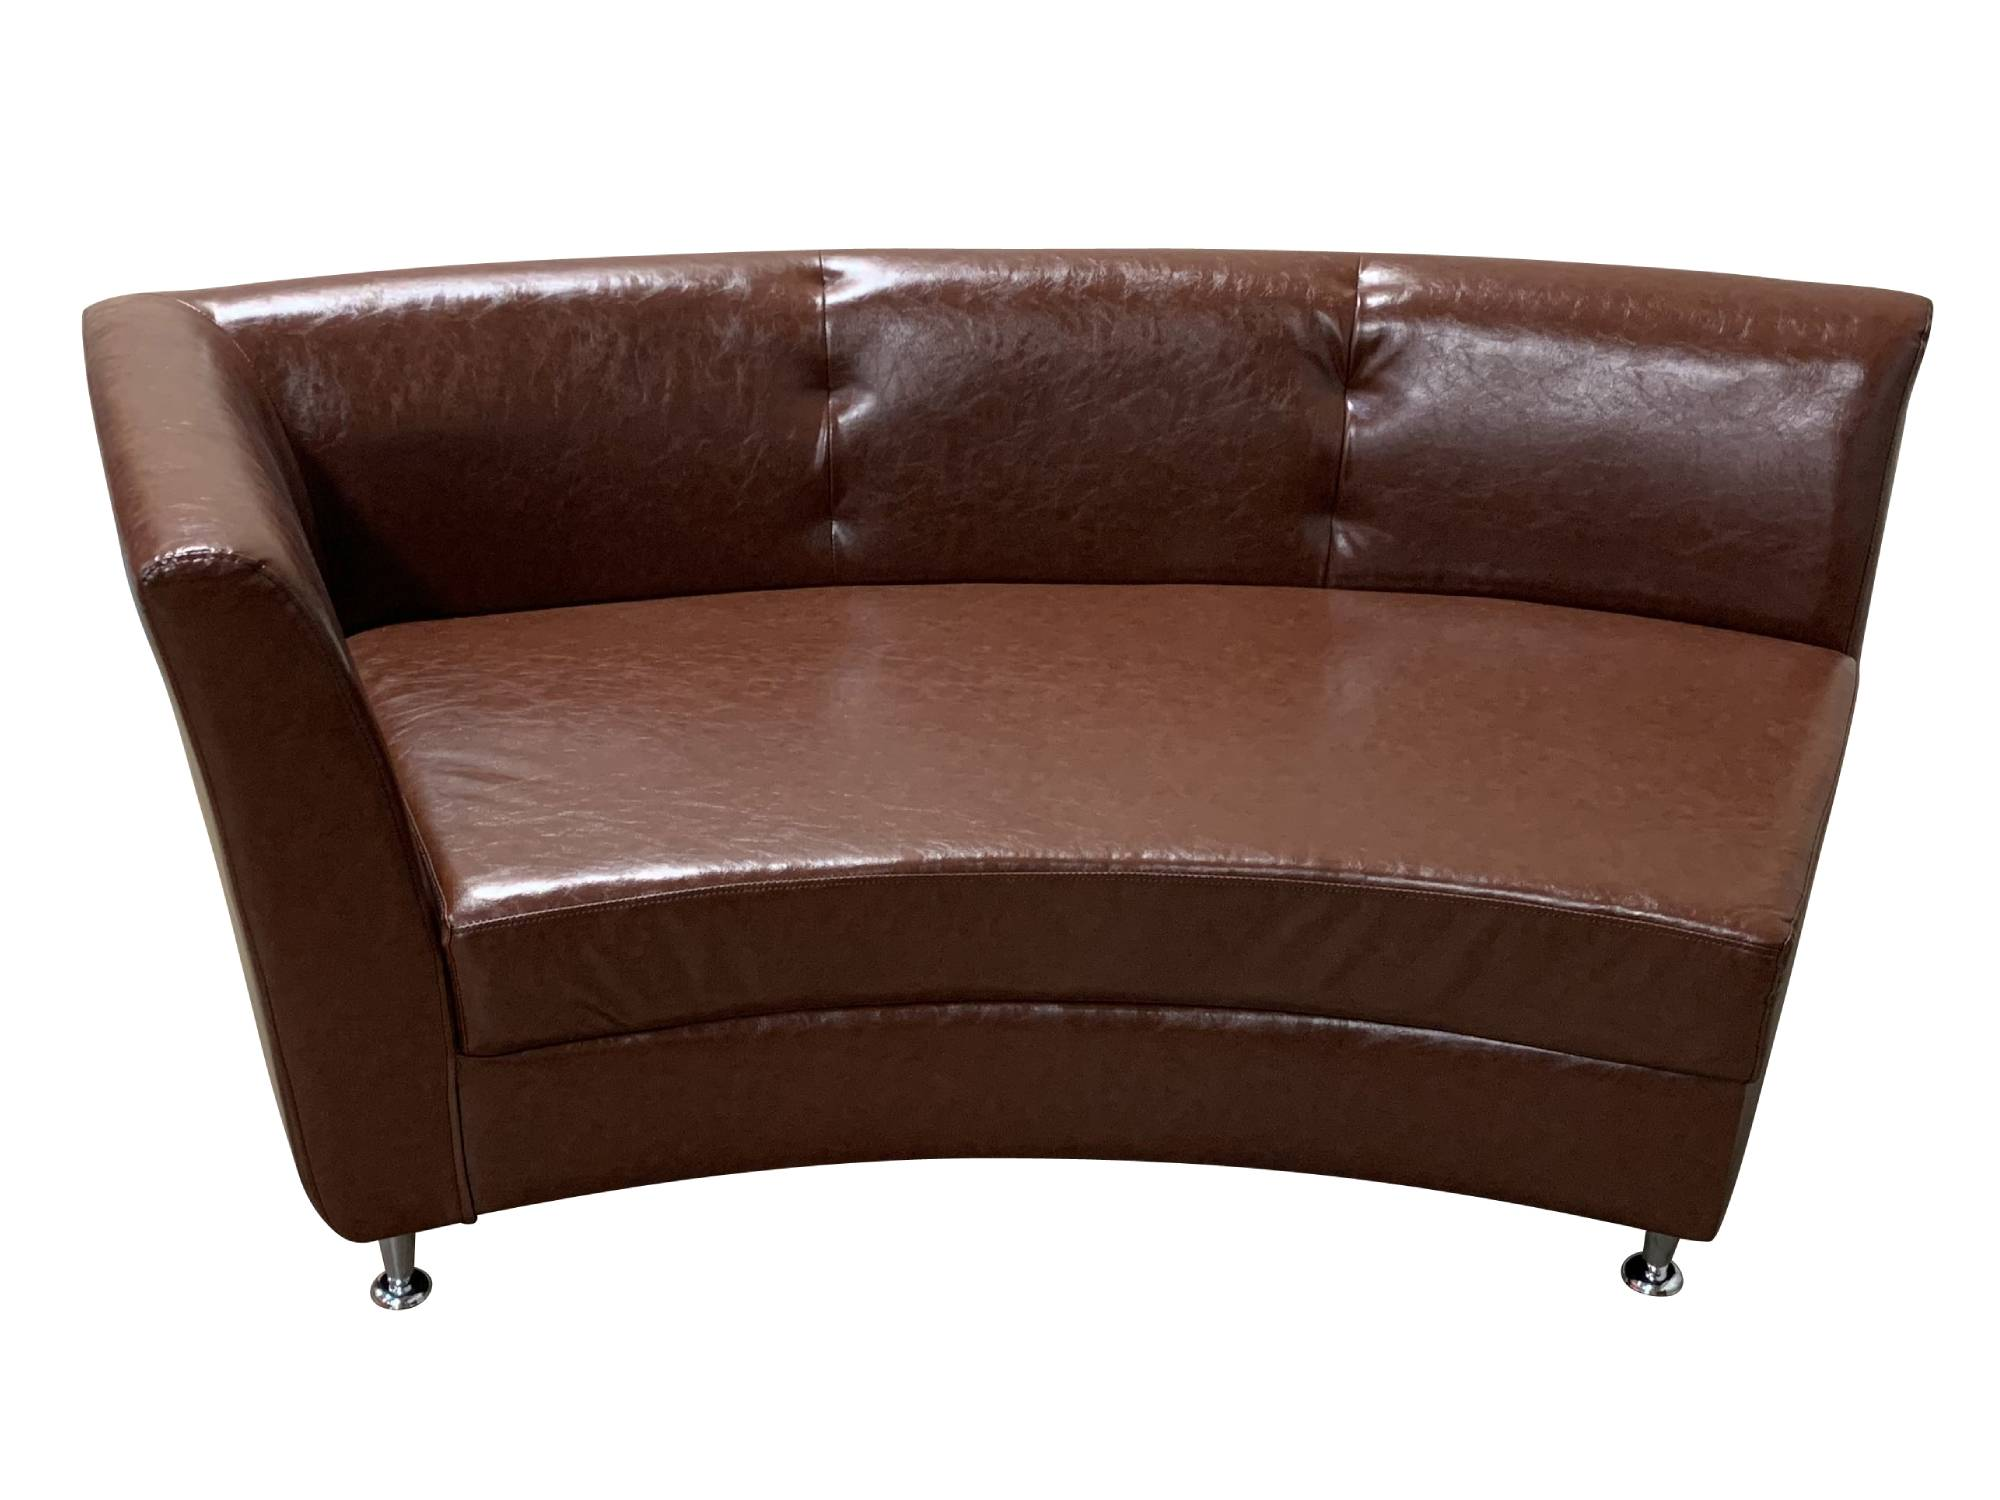 LUXURY RIGHT ARM SOFA SECTION - BROWN